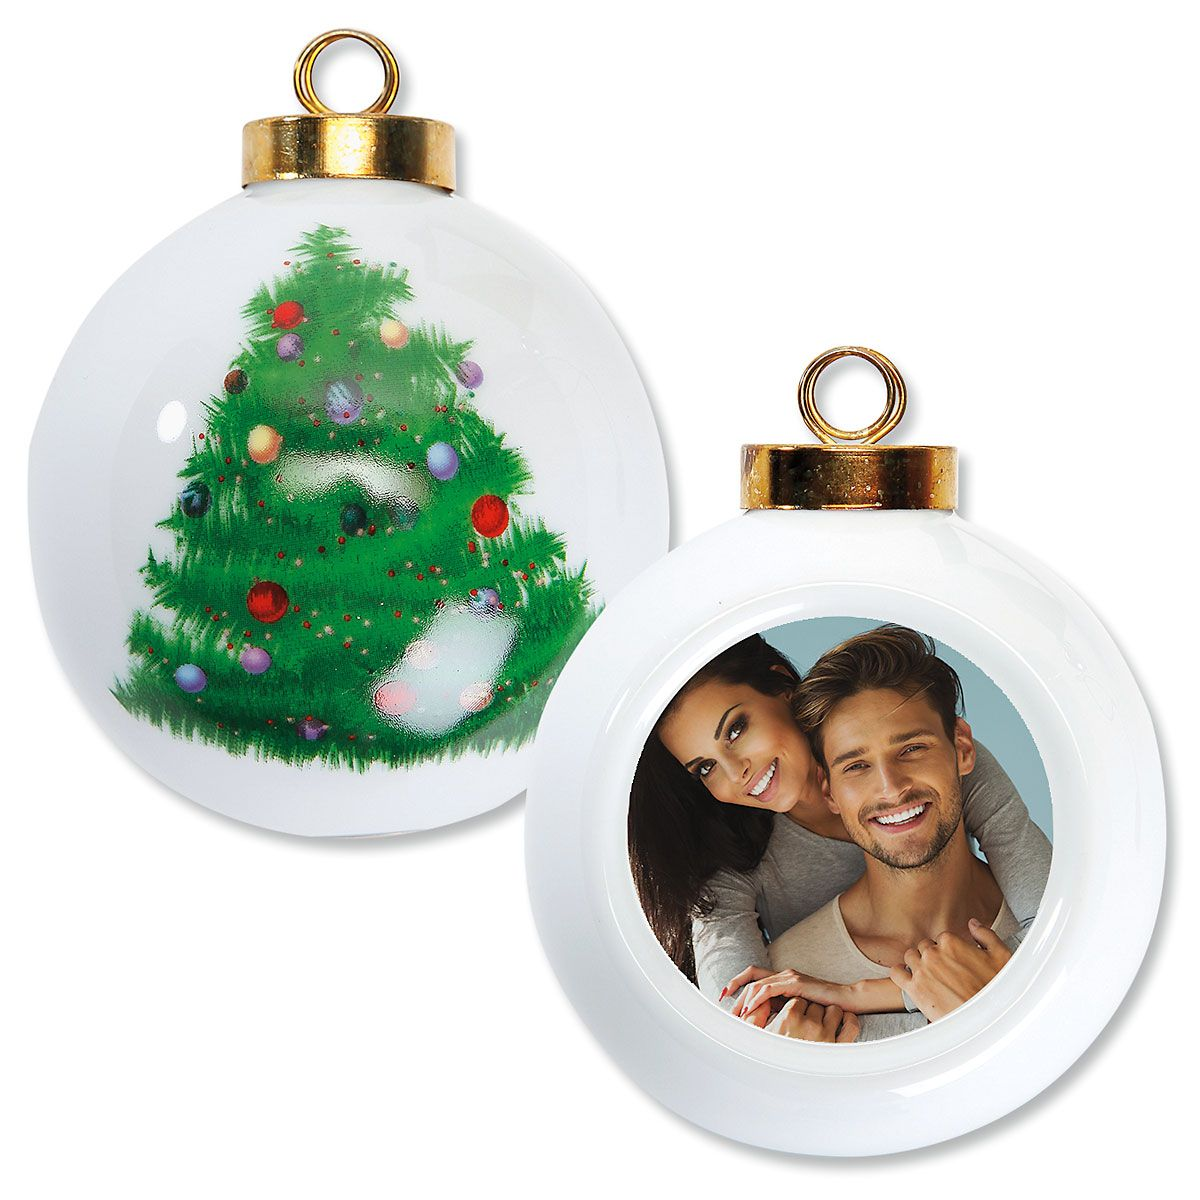 Full Personalized Photo Ornament - Round Tree